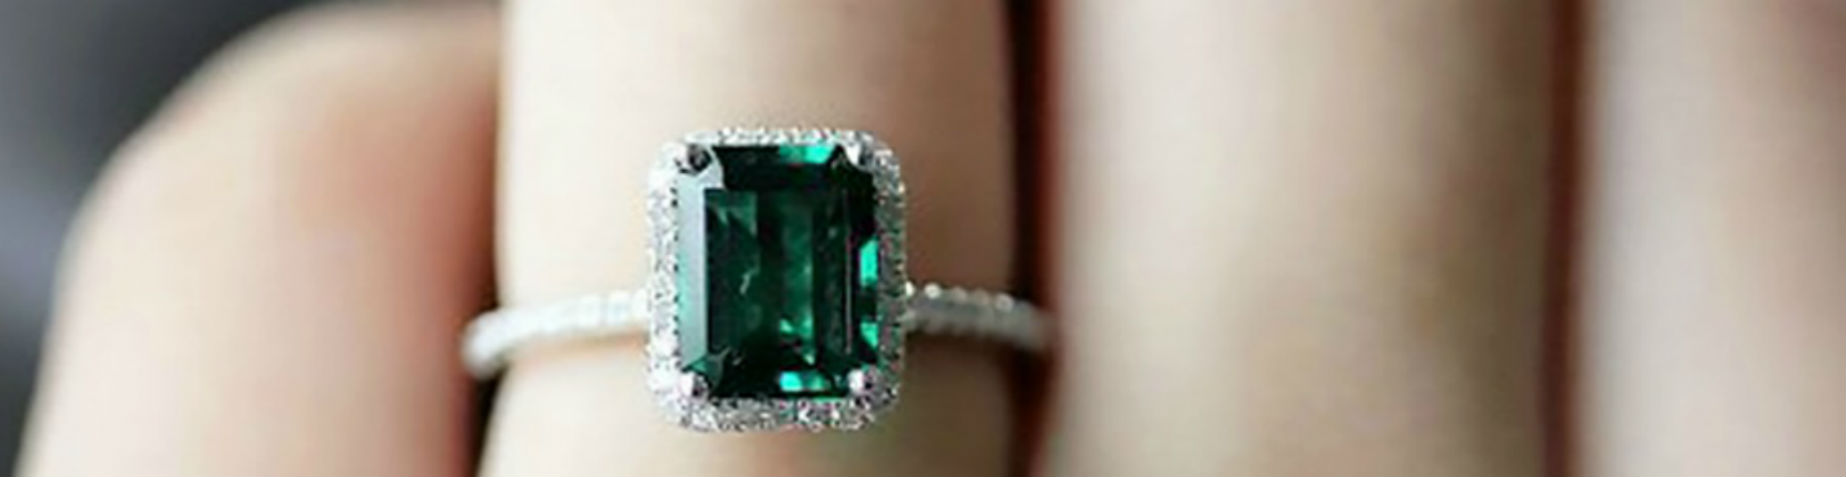 emerald engagement ring on woman's finger